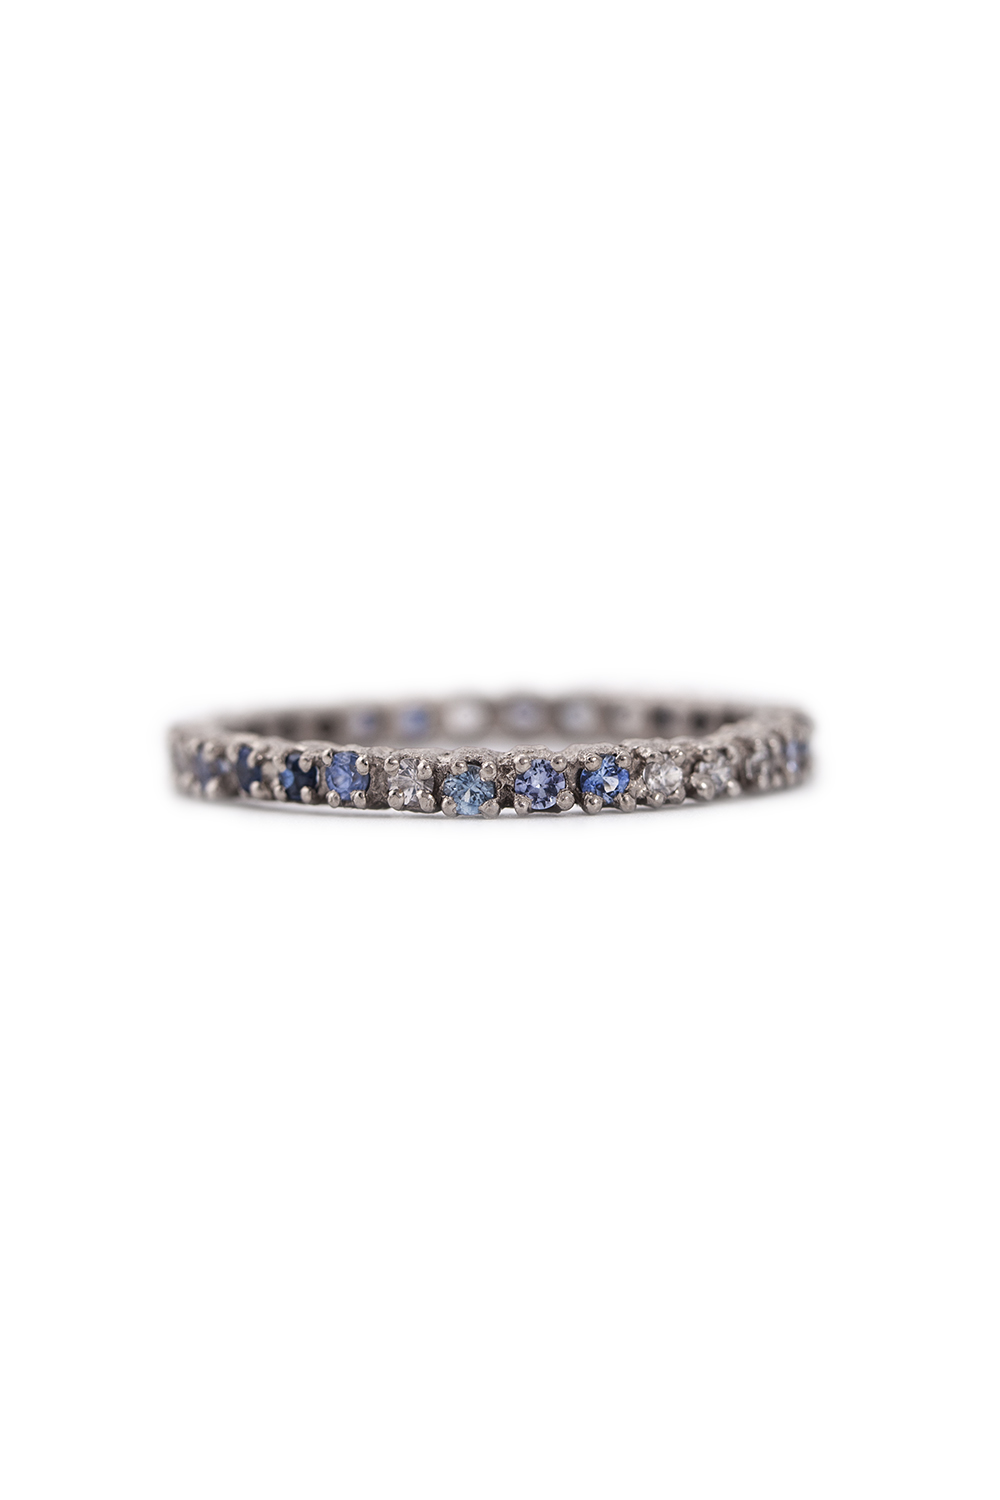 Multi coloured sapphire eternity ring in white gold, £2600